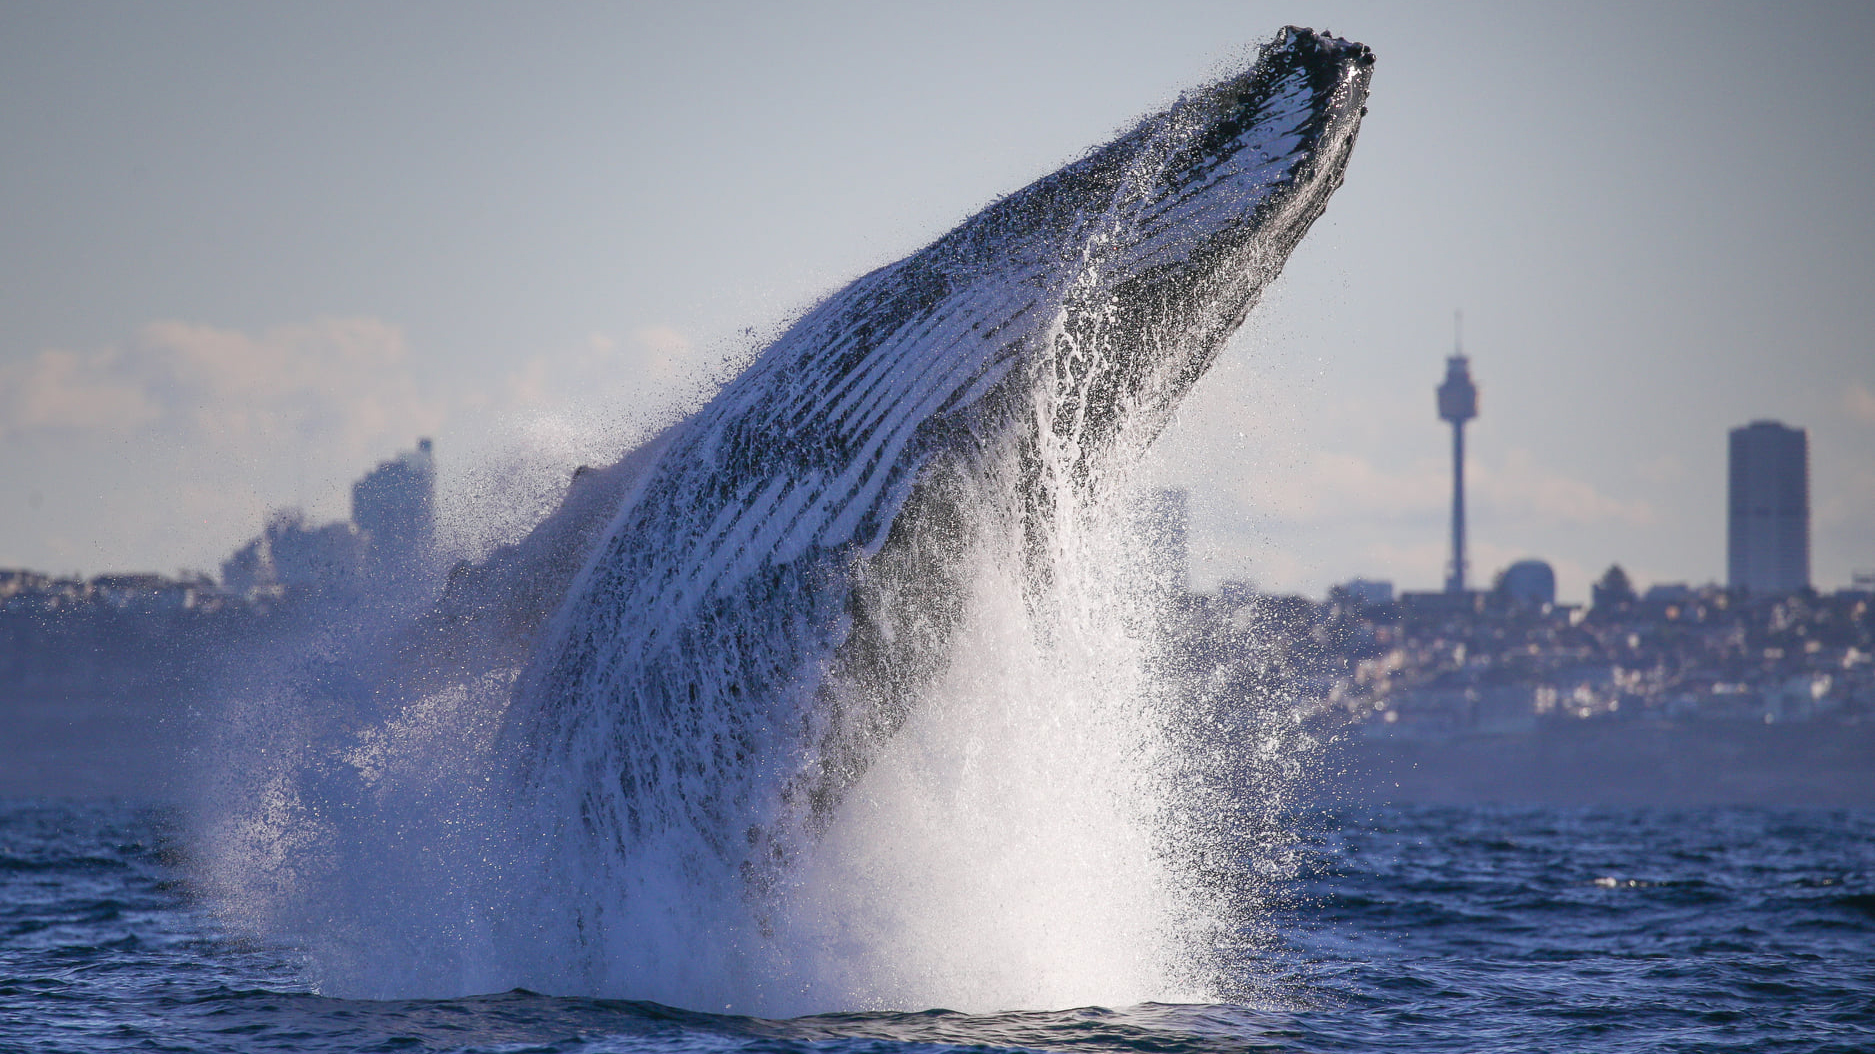 Jet Ski distance rules for whales and dolphins along east-coast Australia